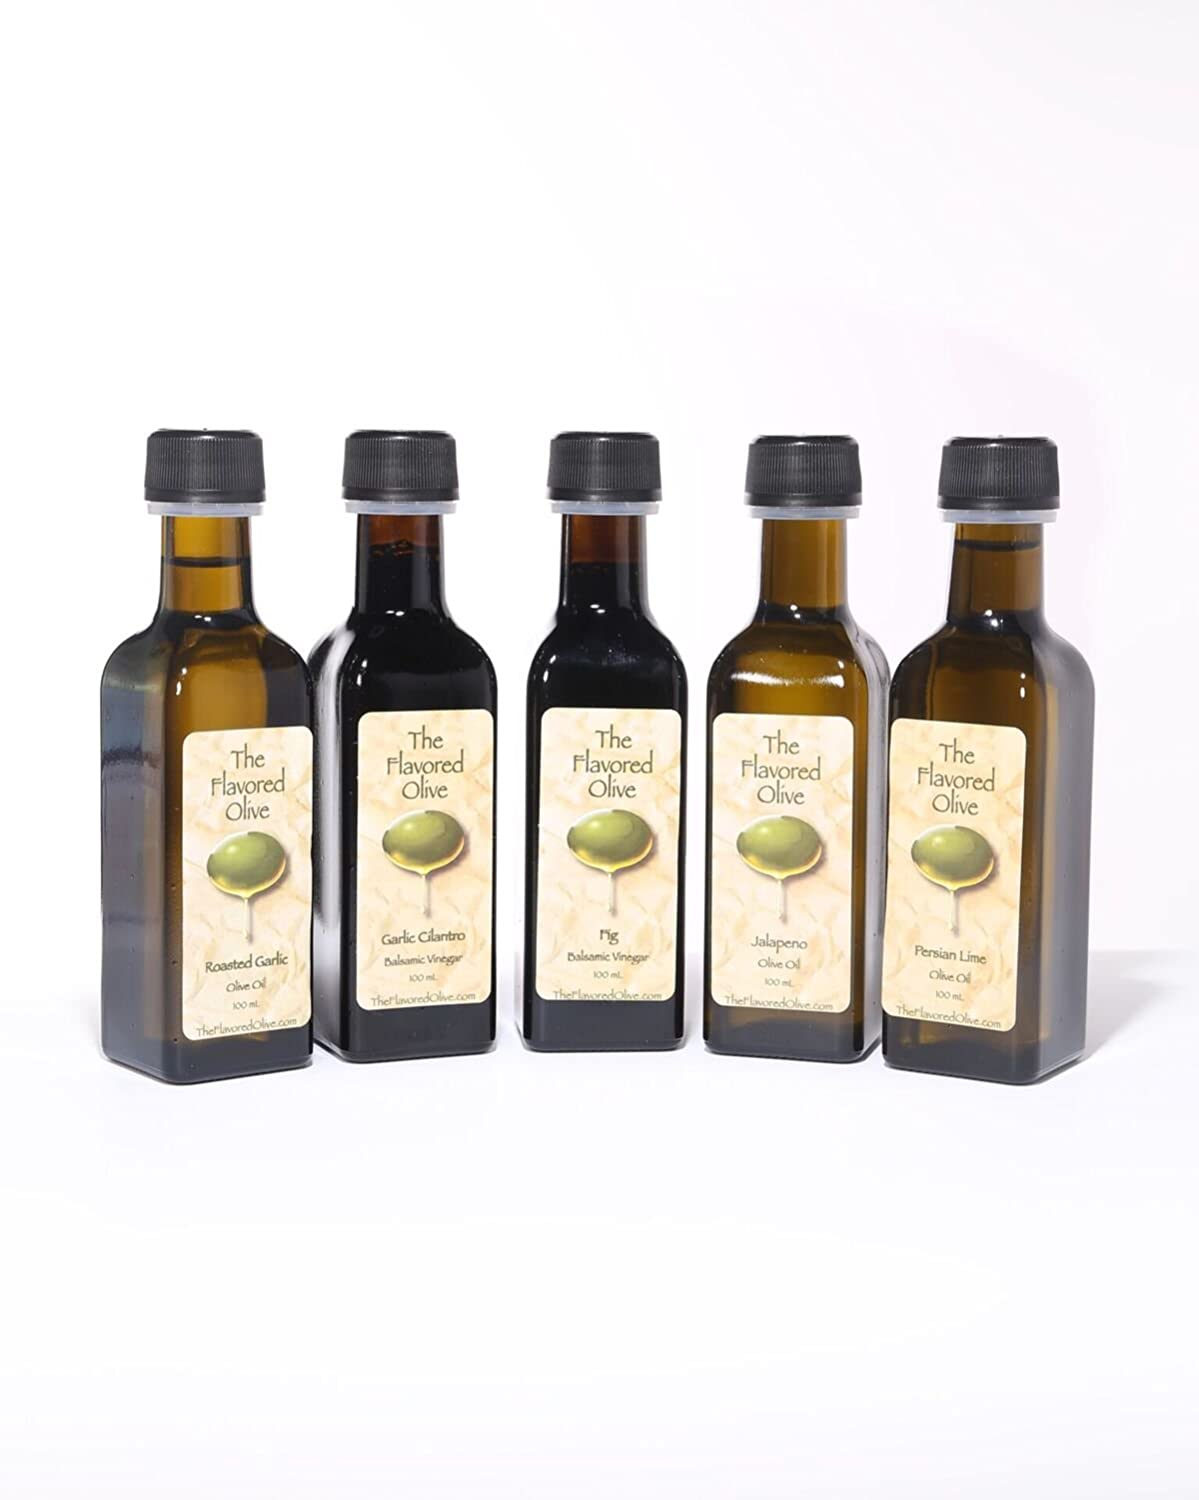 Amazon.com : 4 Small Bottle Sample Pack, Olive Oils, Cold Pressed ...